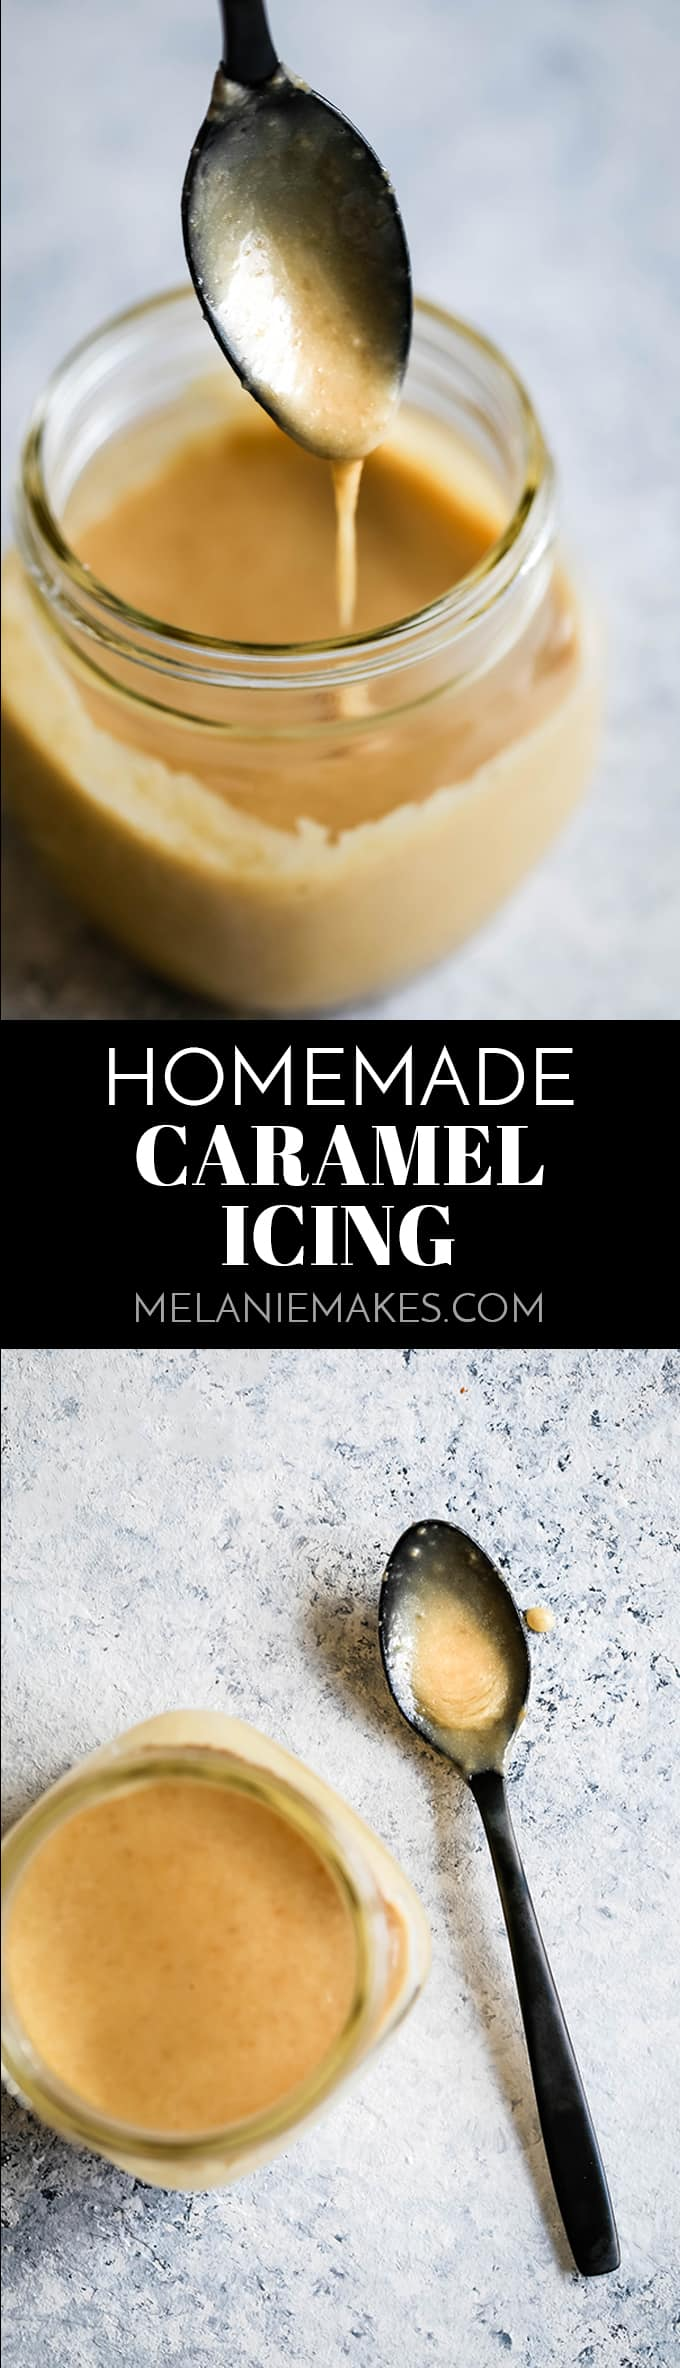 This Homemade Caramel Icing recipes takes just seven minutes to prepare and uses only five ingredients.  EASY.  If you can use a whisk, you'll be an icing expert for sure.